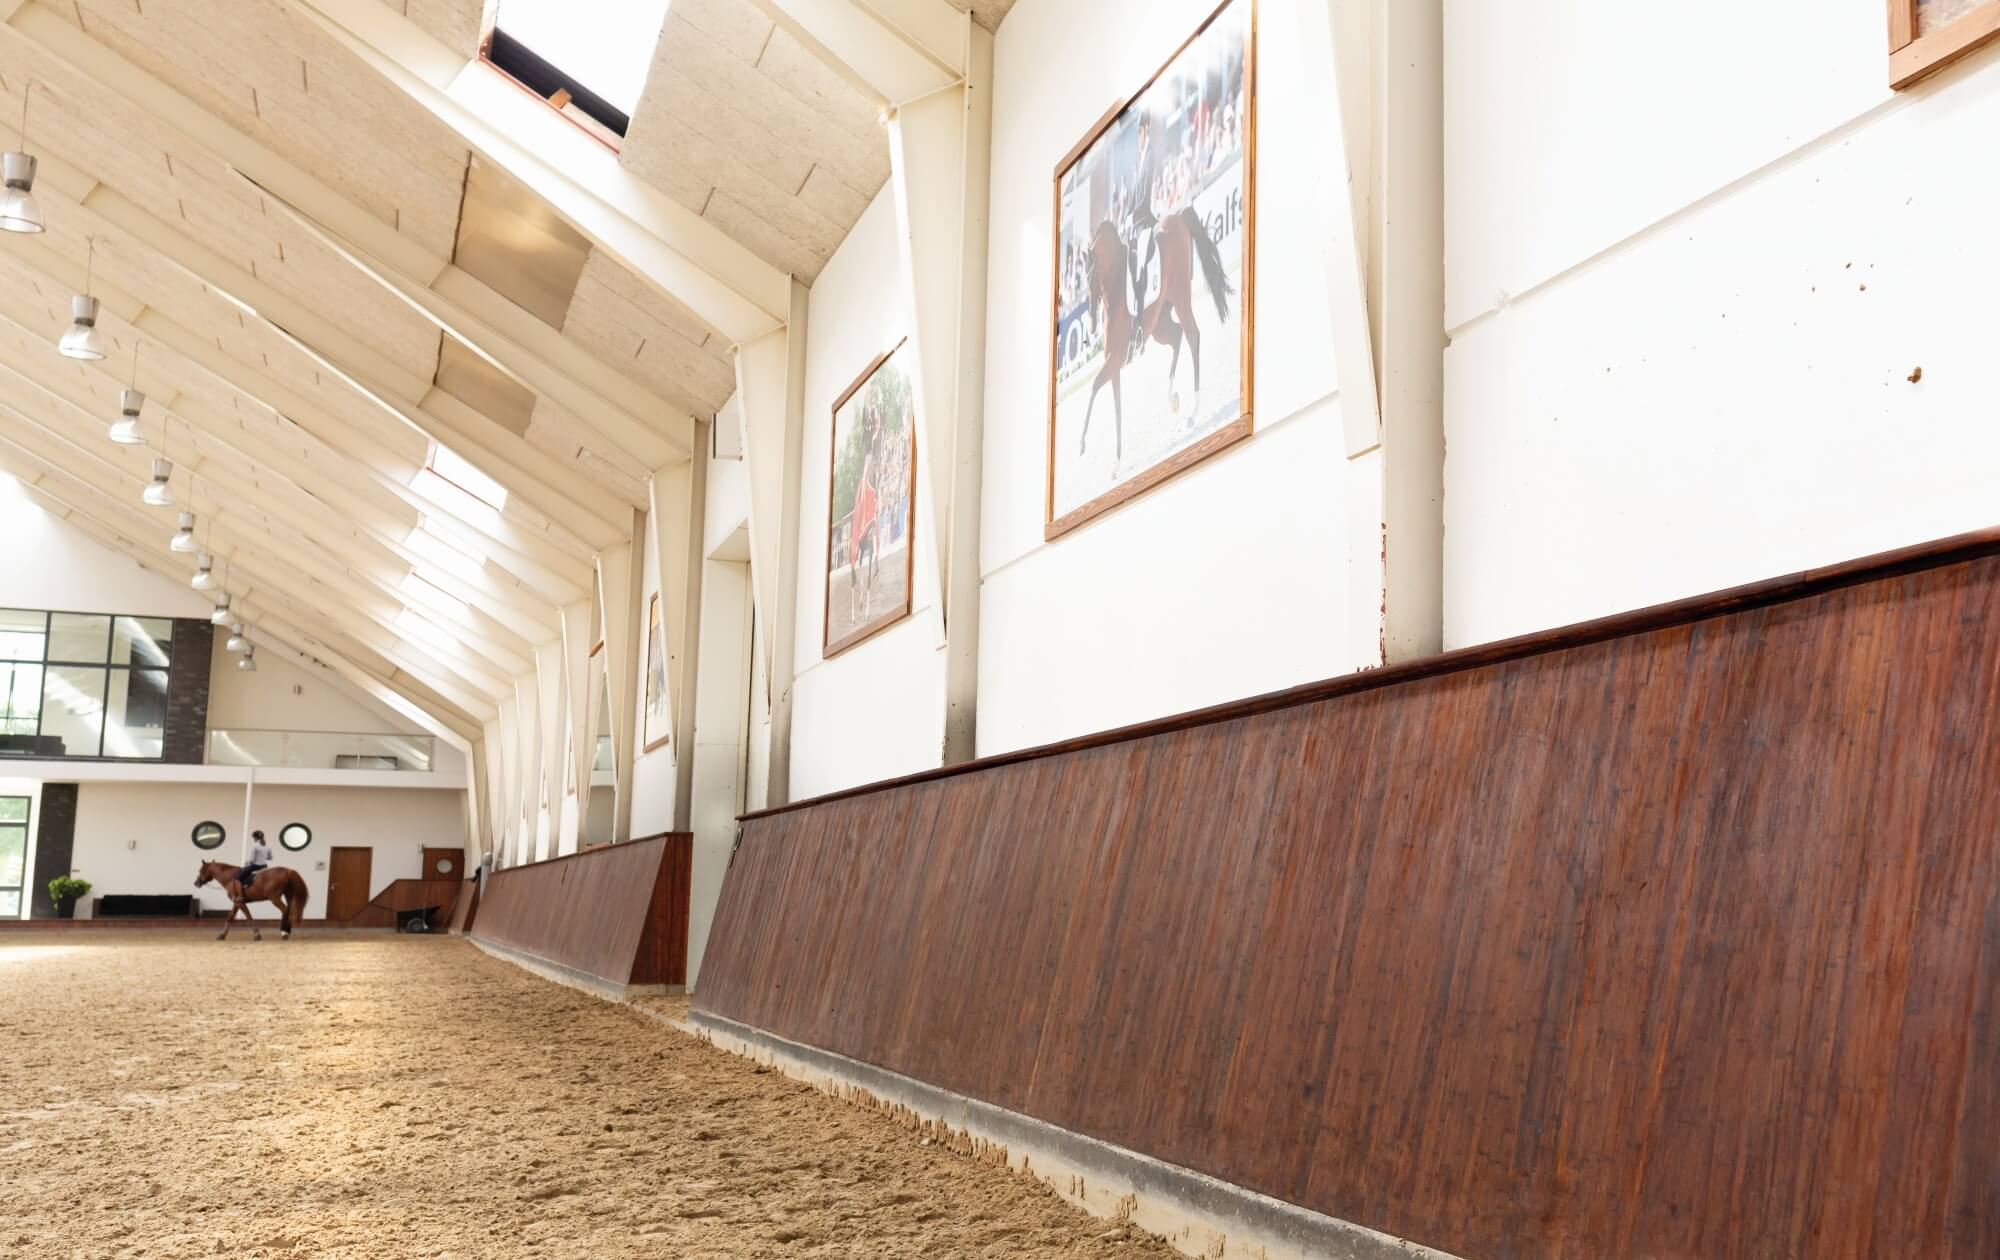 Horse arena with plant-based wood finish on barriers.